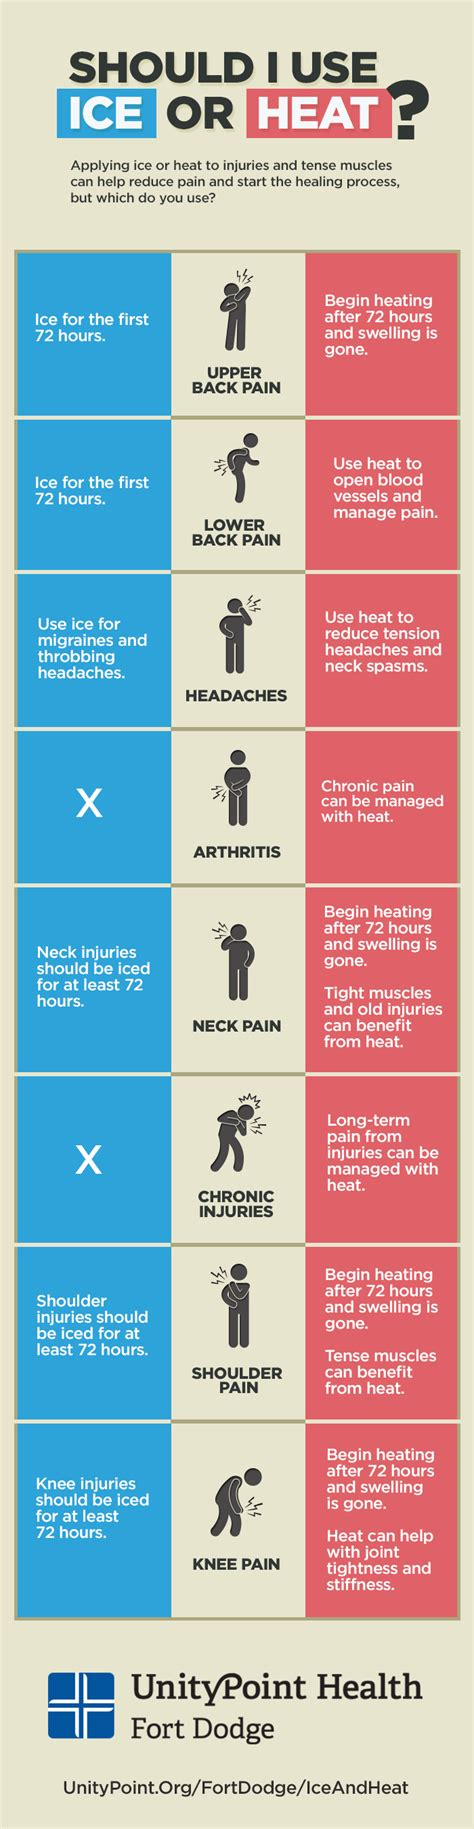 Injuries & Pain: When to Use Ice or Heat (Infographic)